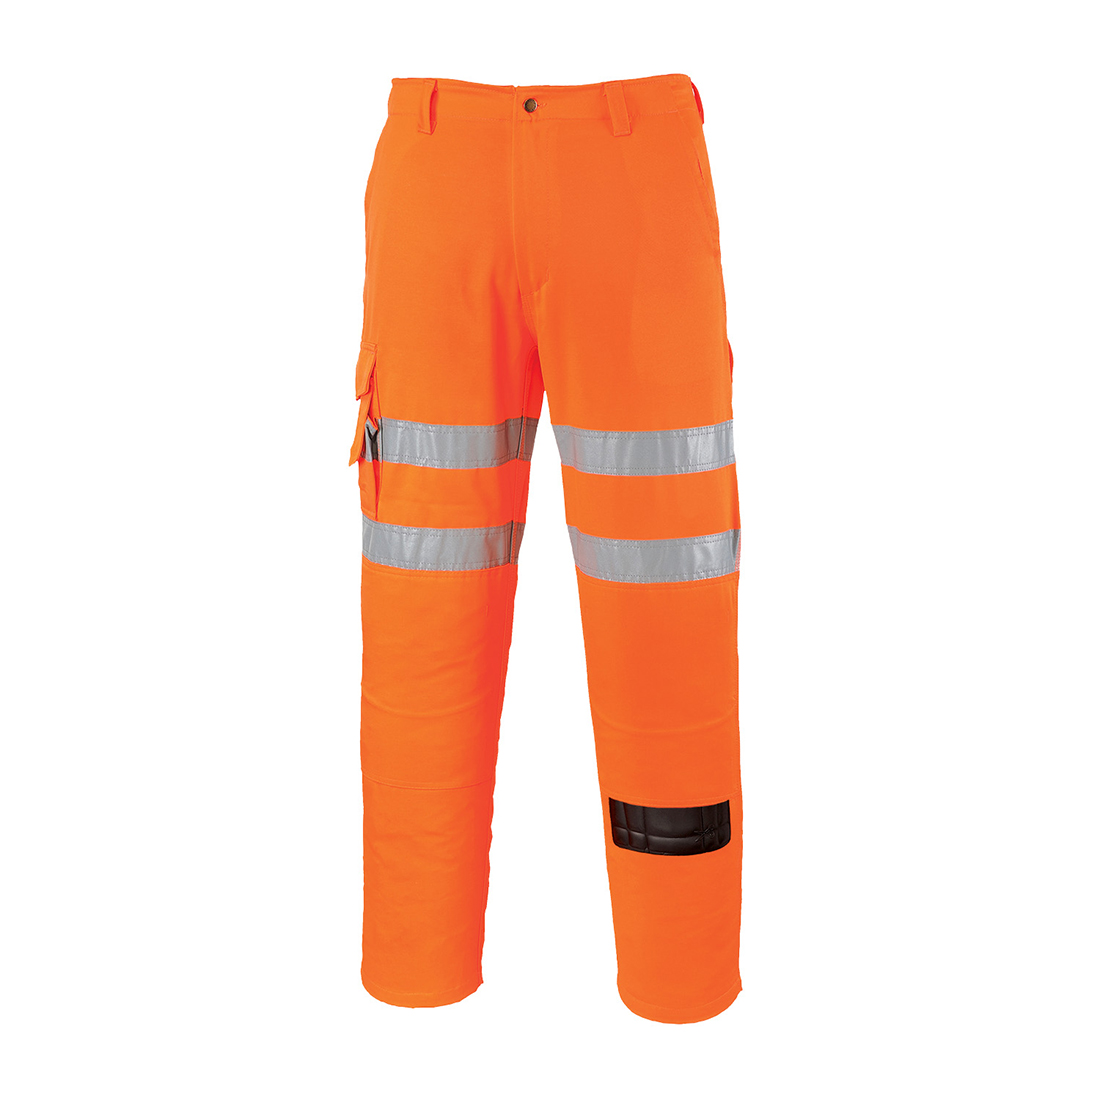 Rail Combat Trousers Orange Small